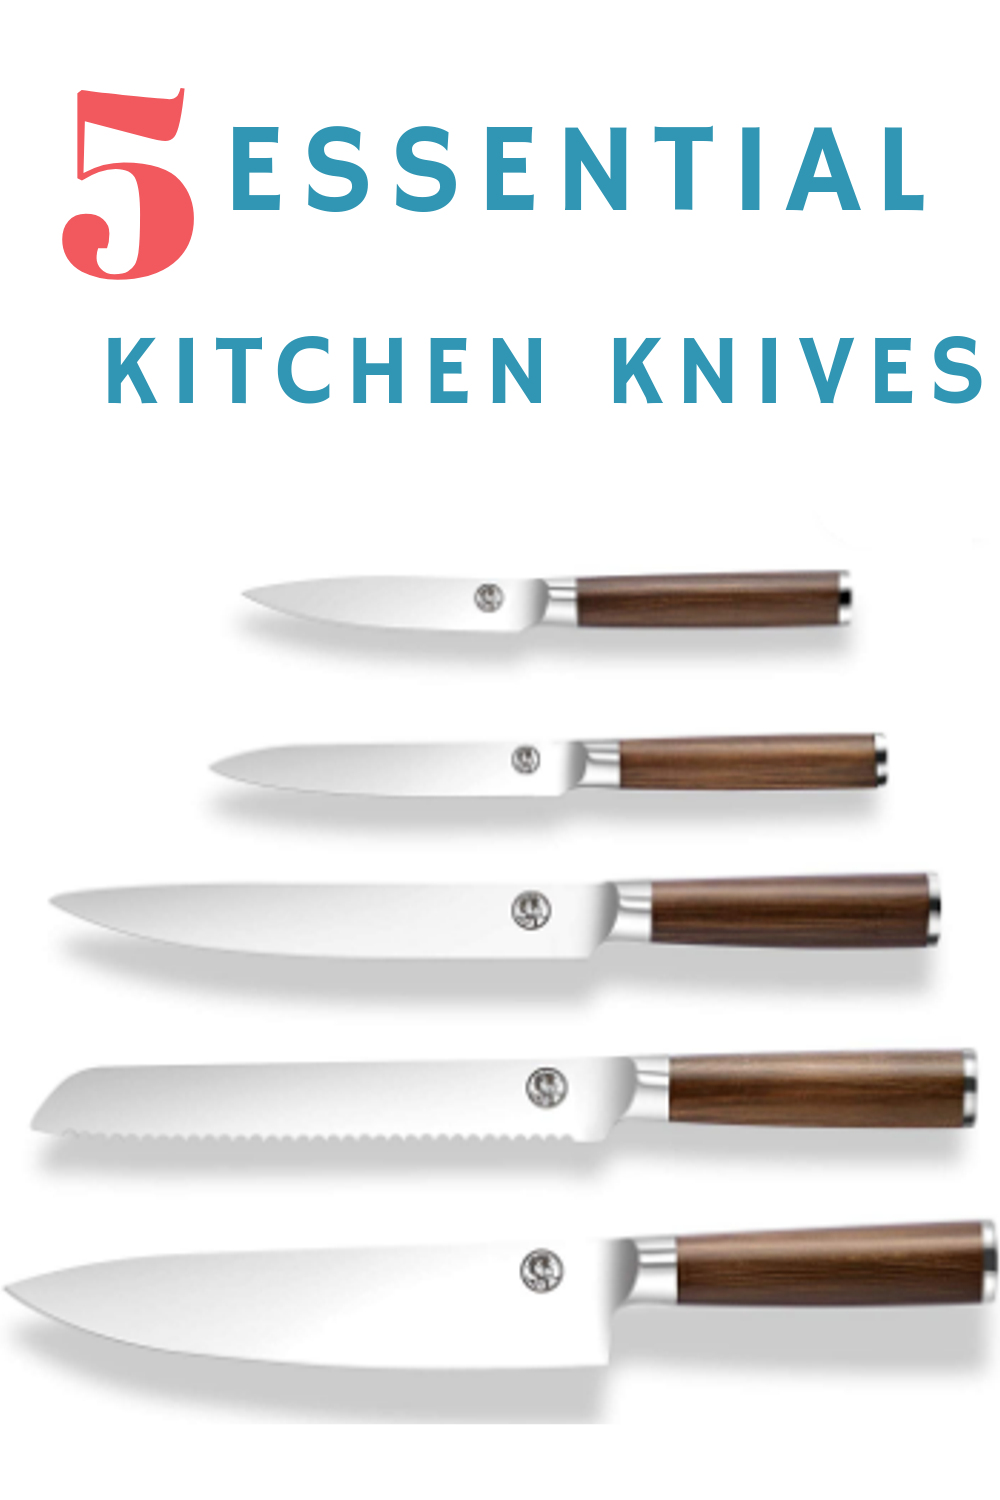 what kitchen knives do i need what knives do i really need in my kitchen kitchen tools gadgets kitchen knives kitchen 5794